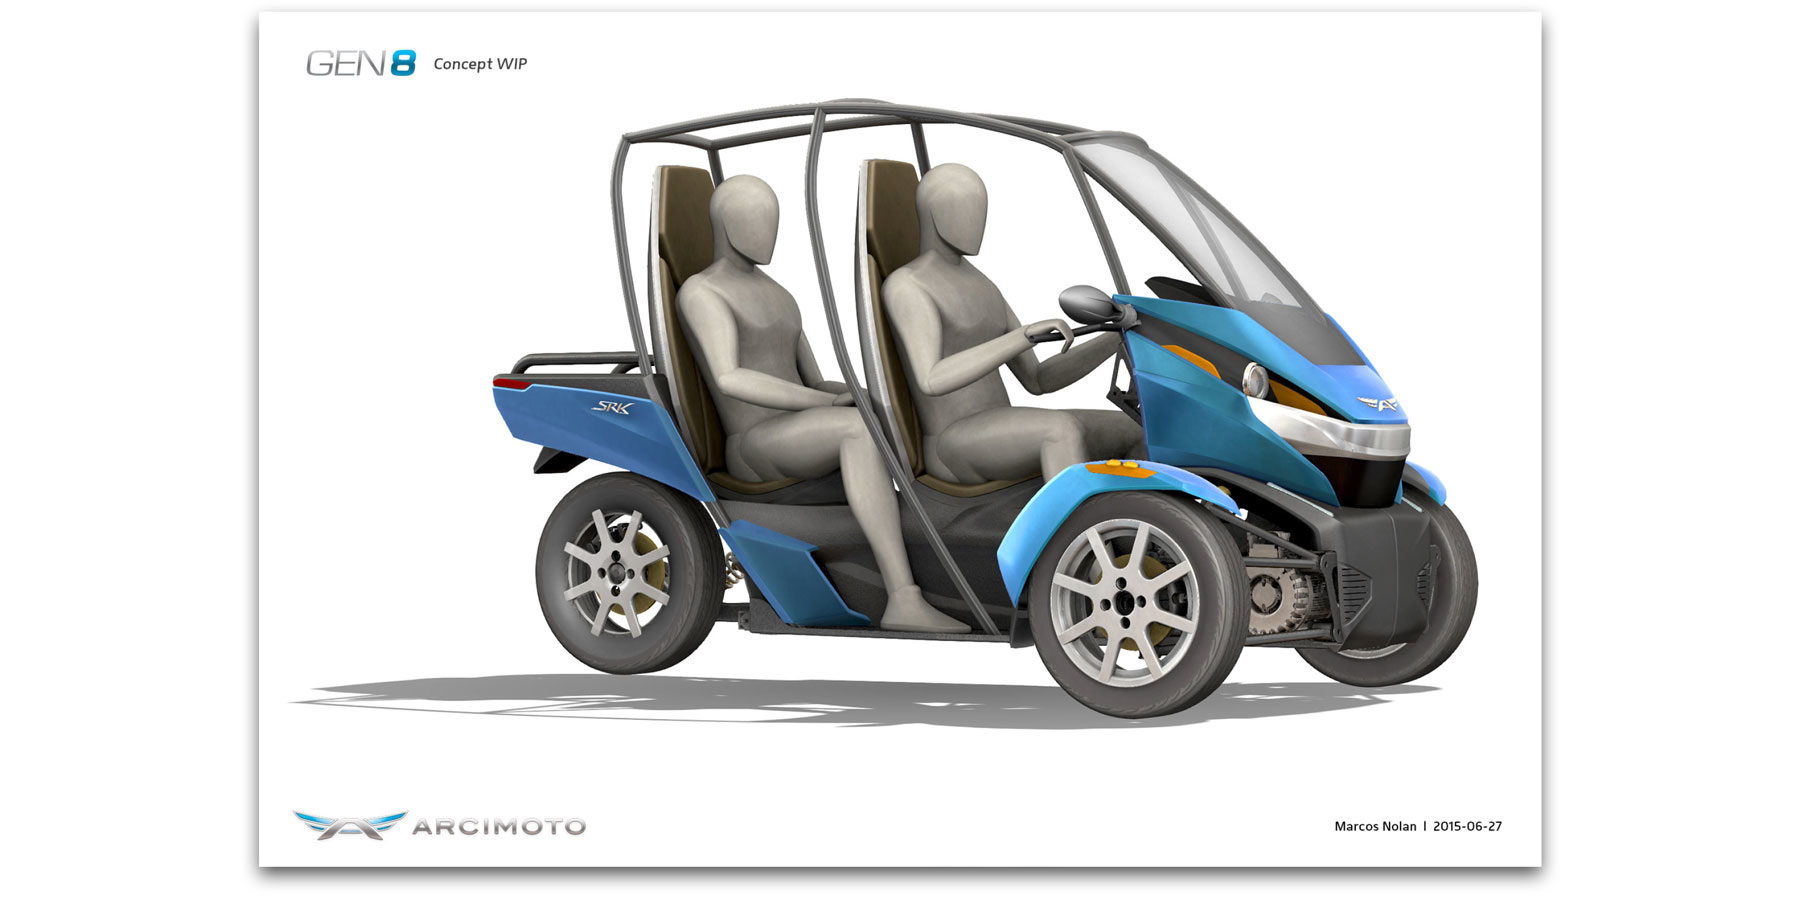 Courana Multidisciplinary Design By Marcos Nolan Toyota Shows The Iroad A Fullyenclosed Tilting Electric Three Previous Next Image 1 Of 7